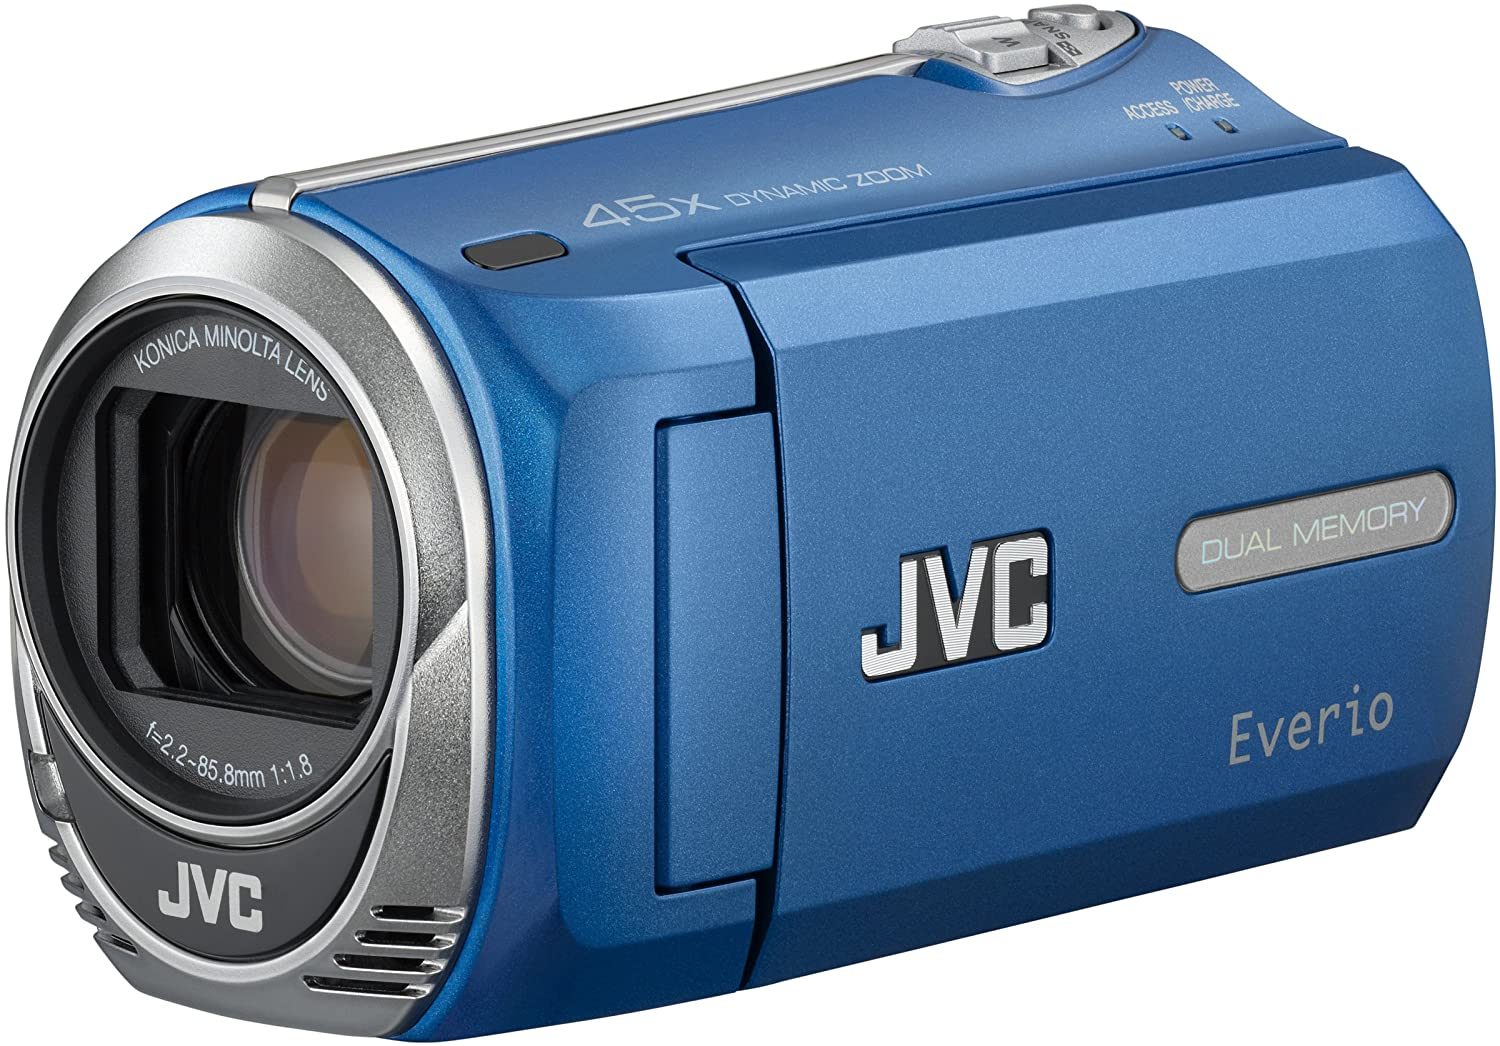 Amazon.com : JVC GZ-MS230 Camcorder (Blue) : Dual Sd Camcorders : Camera &  Photo